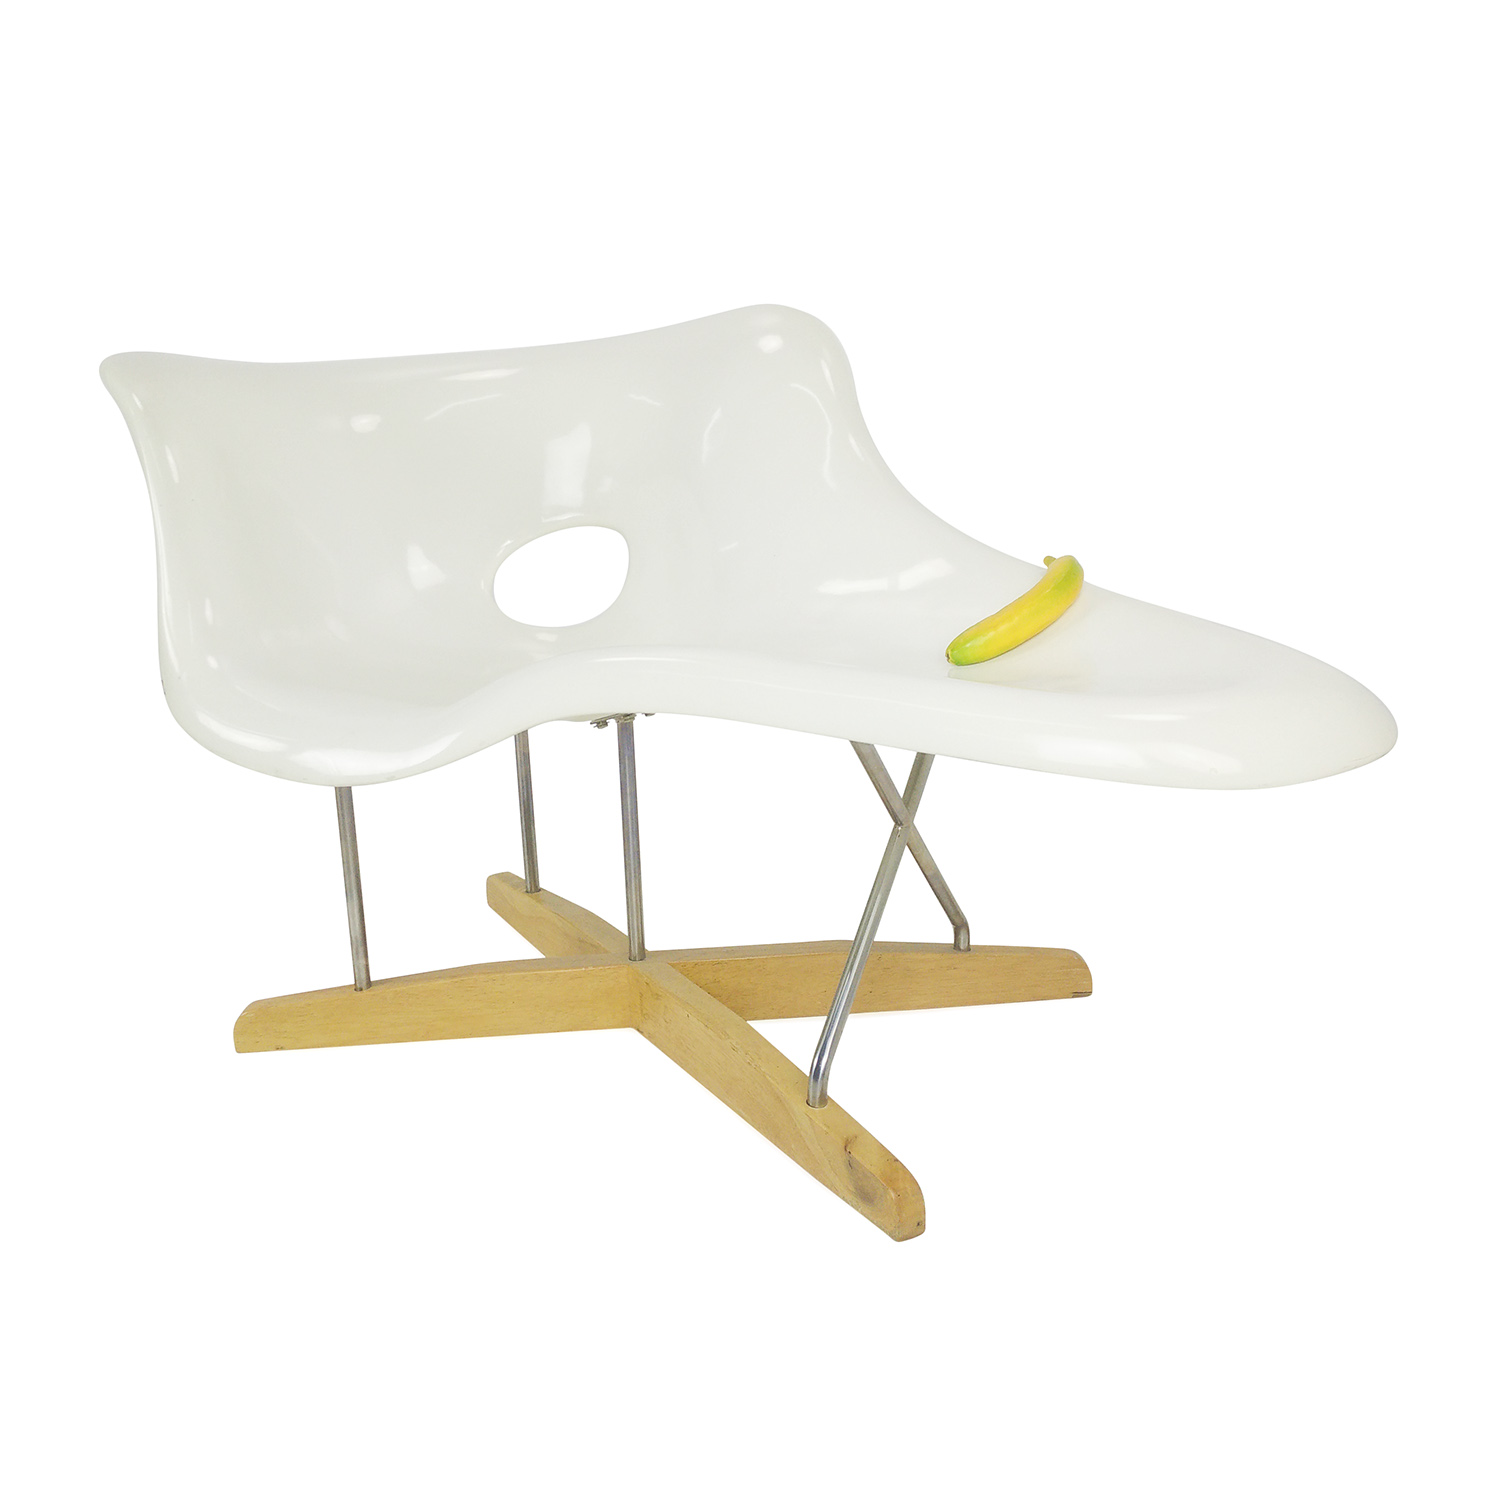 63 off eames replica of la chaise la chaise replica for Chaise and lounge